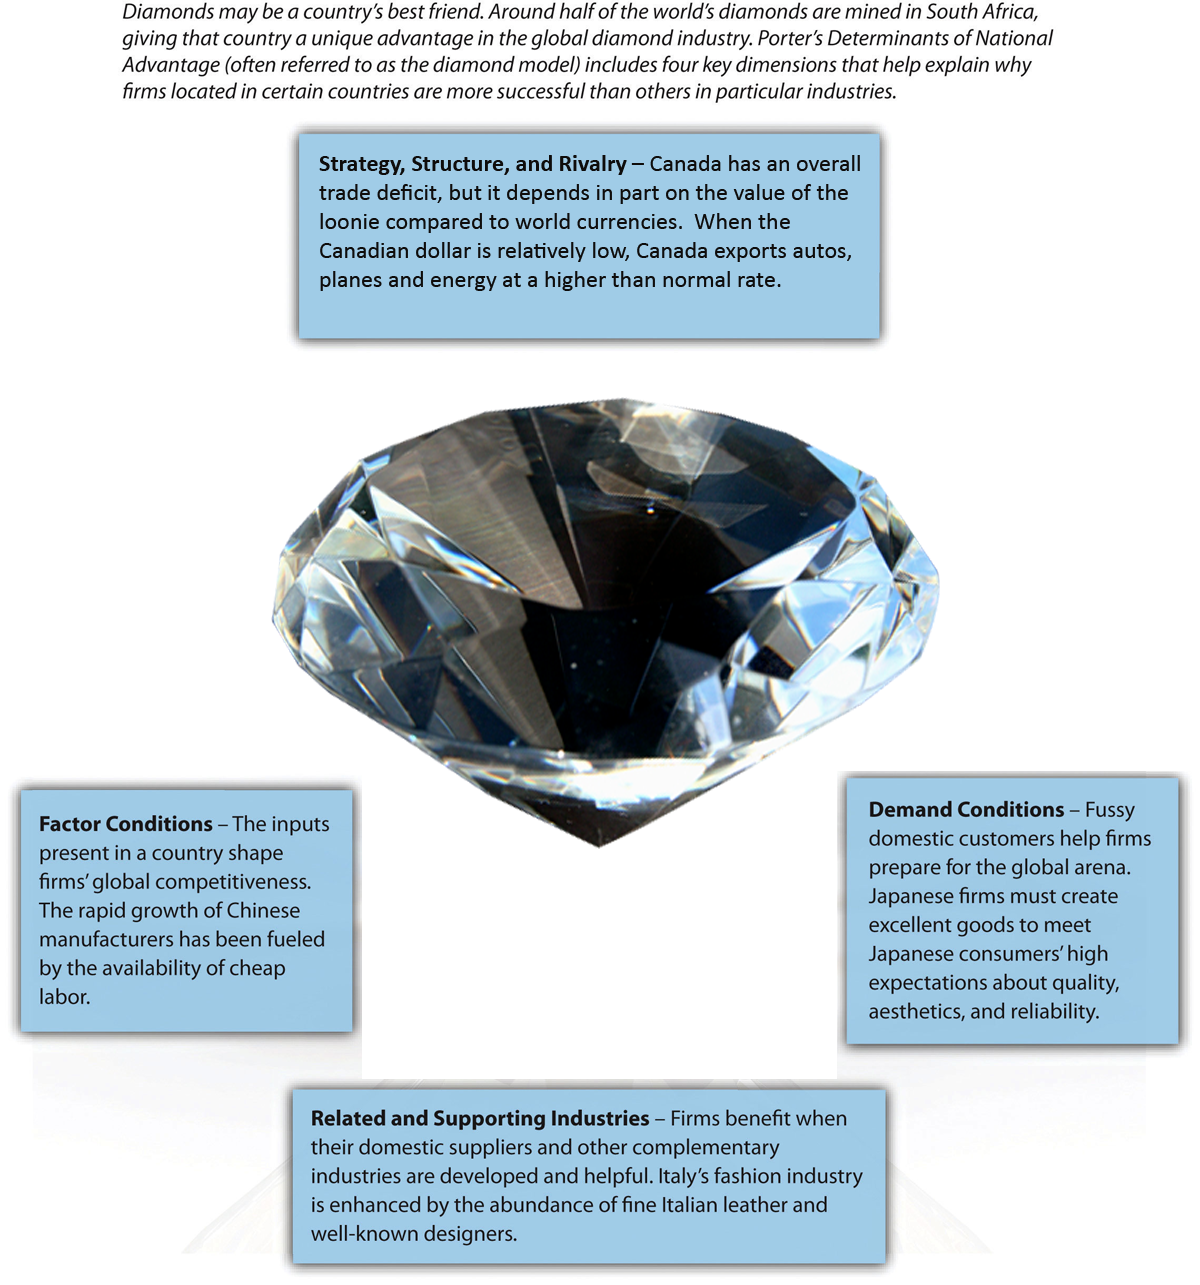 Figure 7-14: Diamond Model of National Advantage